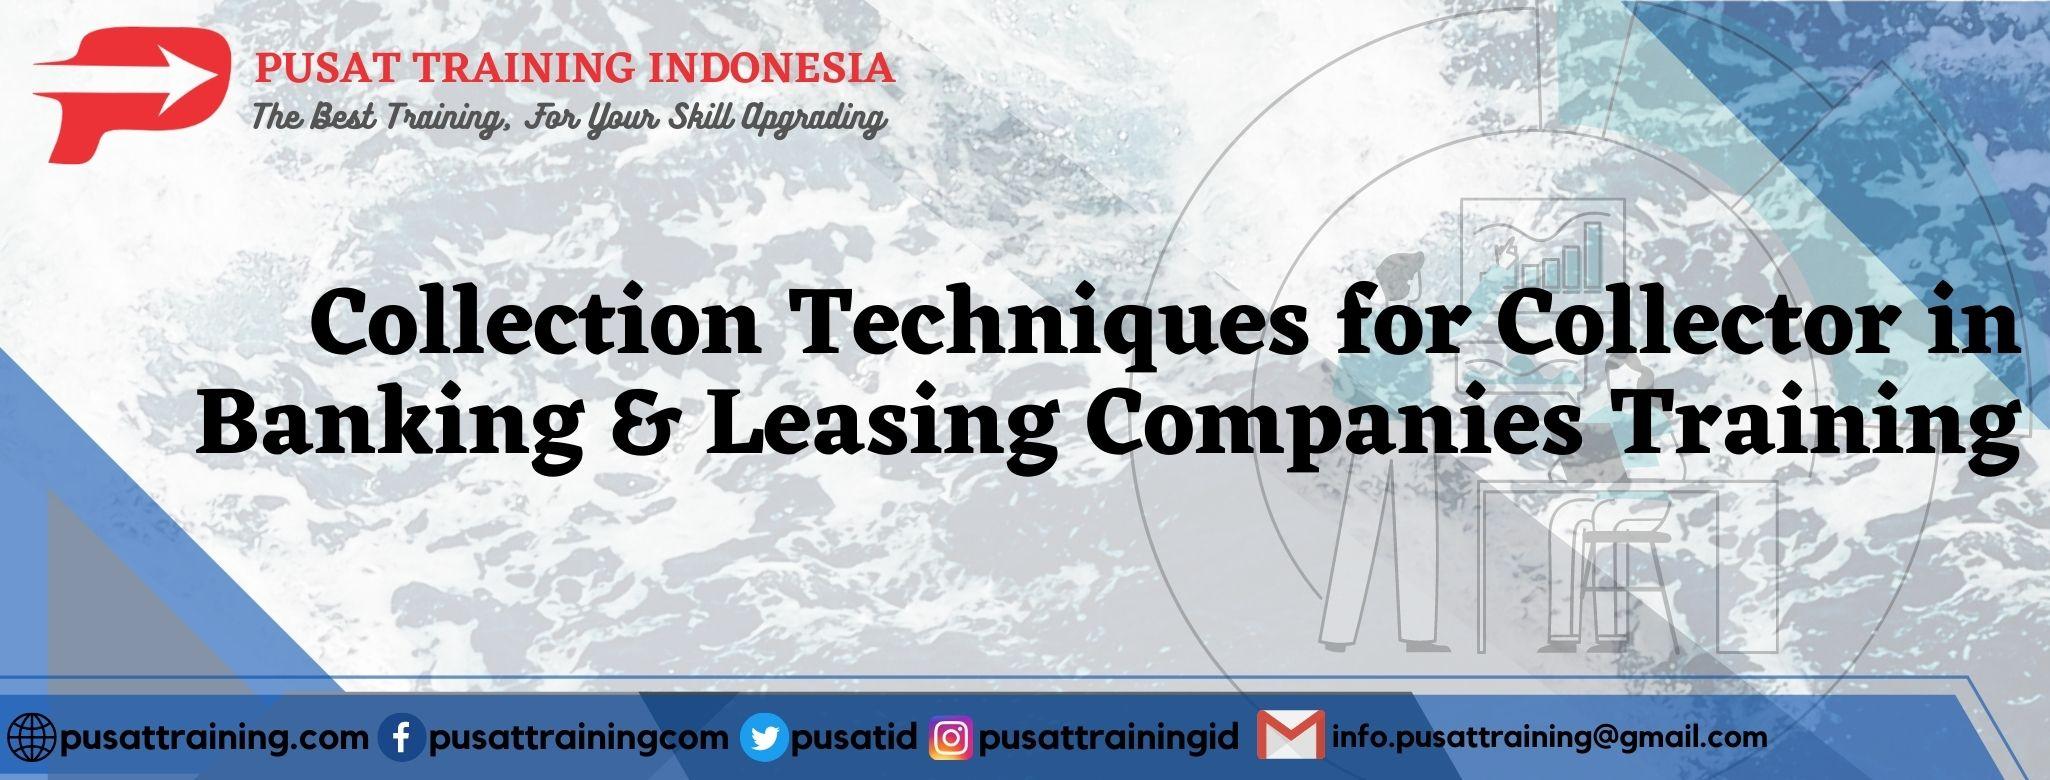 Collection-Techniques-for-Collector-in-Banking-Leasing-Companies-Training